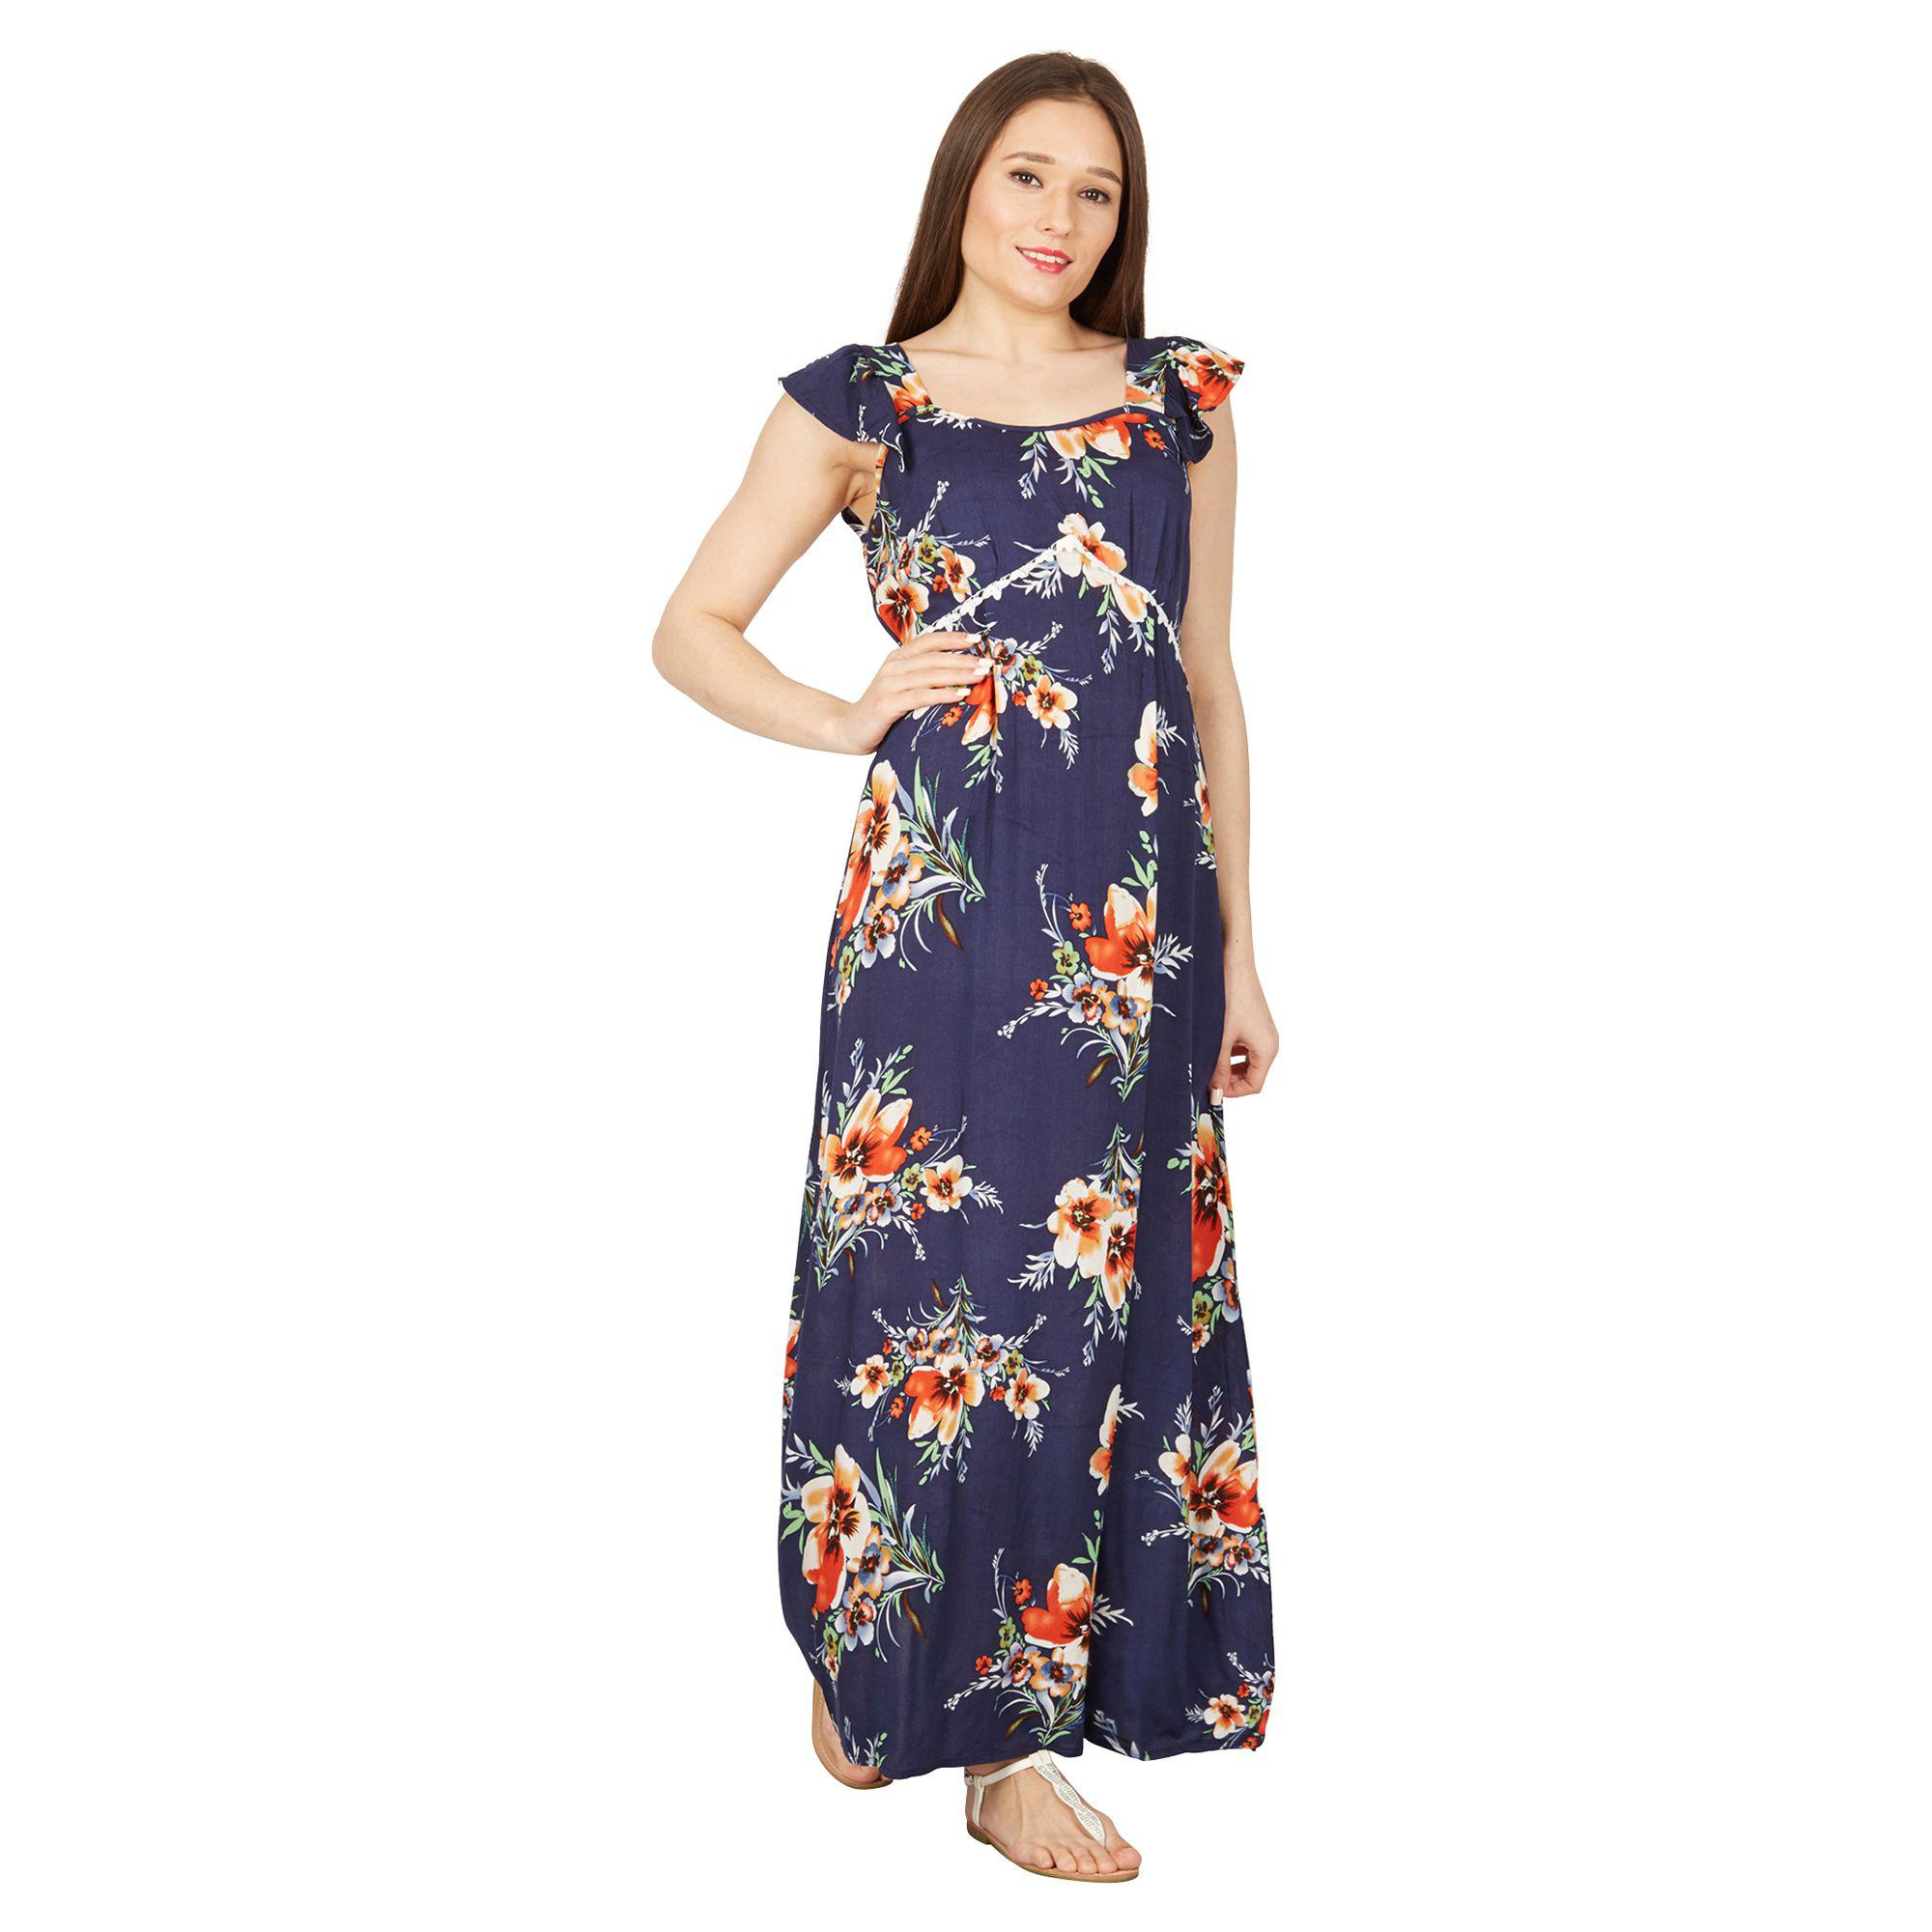 743361e4949 Izabel London Navy Printed Maxi Dress in Blue - Lyst